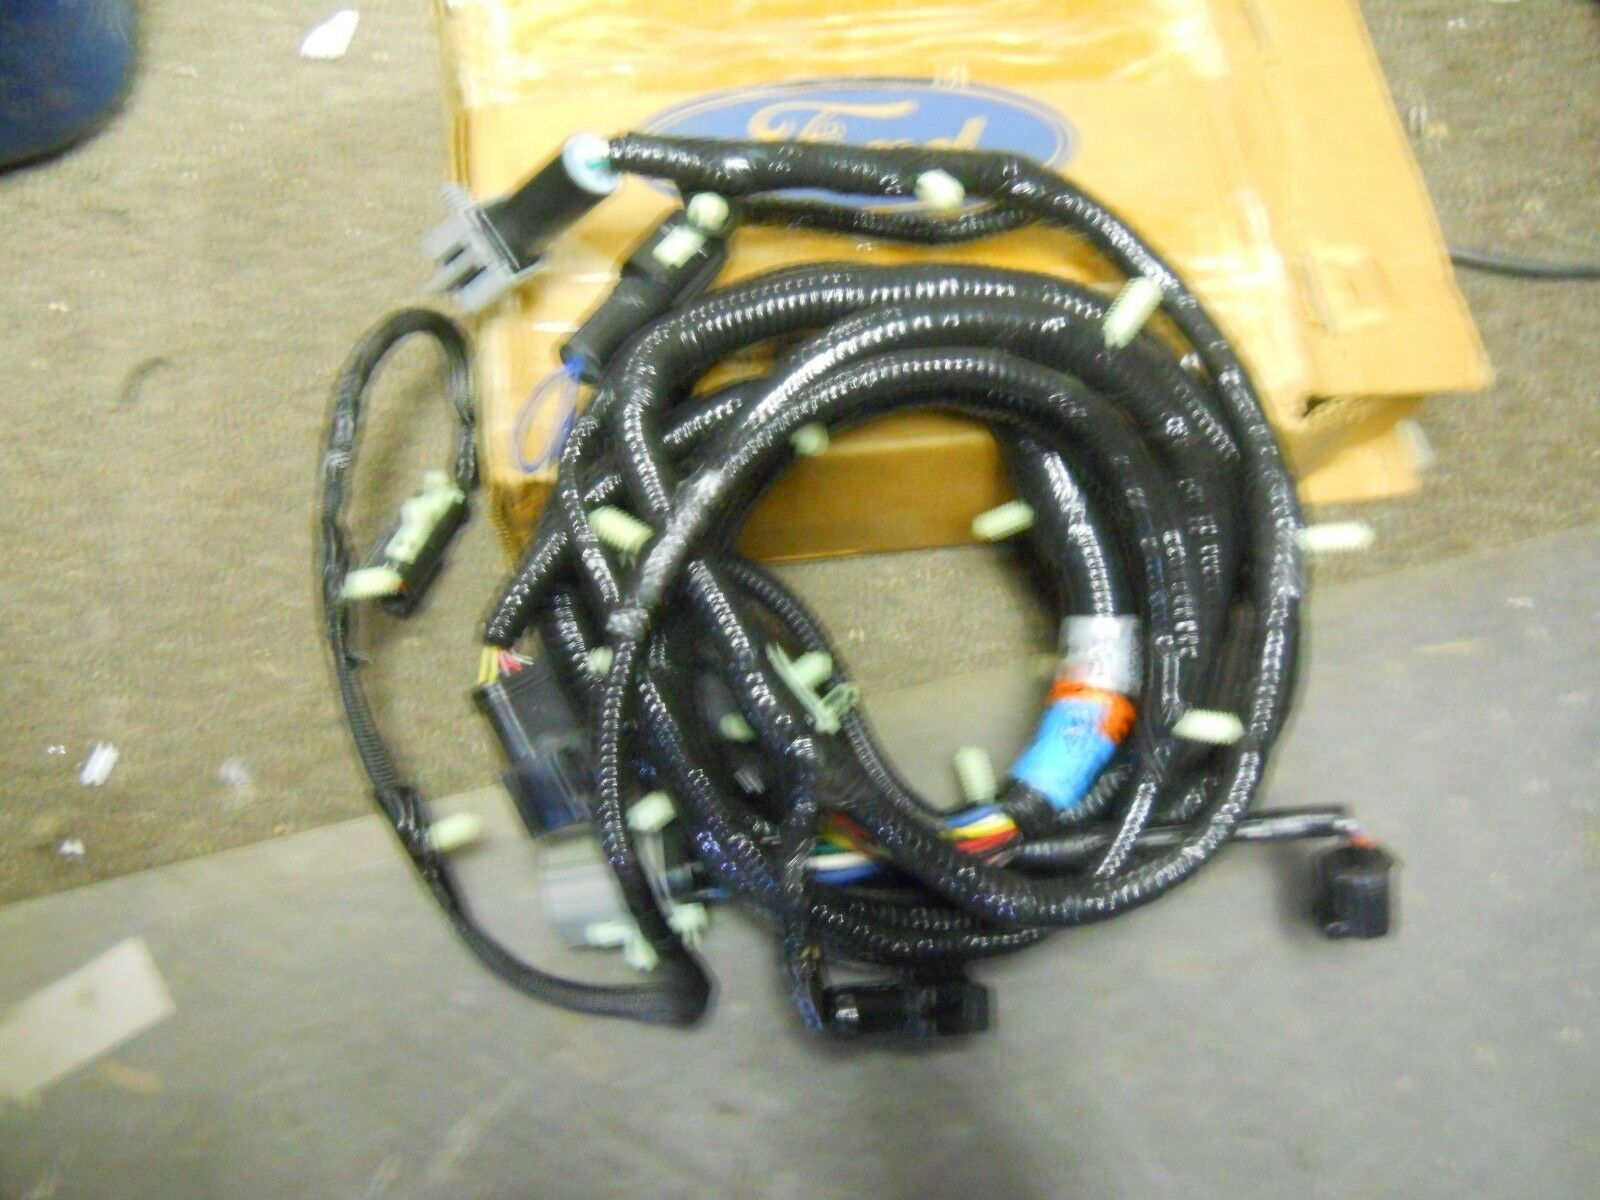 Oem 1998 1999 Ford Windstar Fuel Pump Wiring Harness Ebay 1999 Ford  Windstar Wiring Harness #19